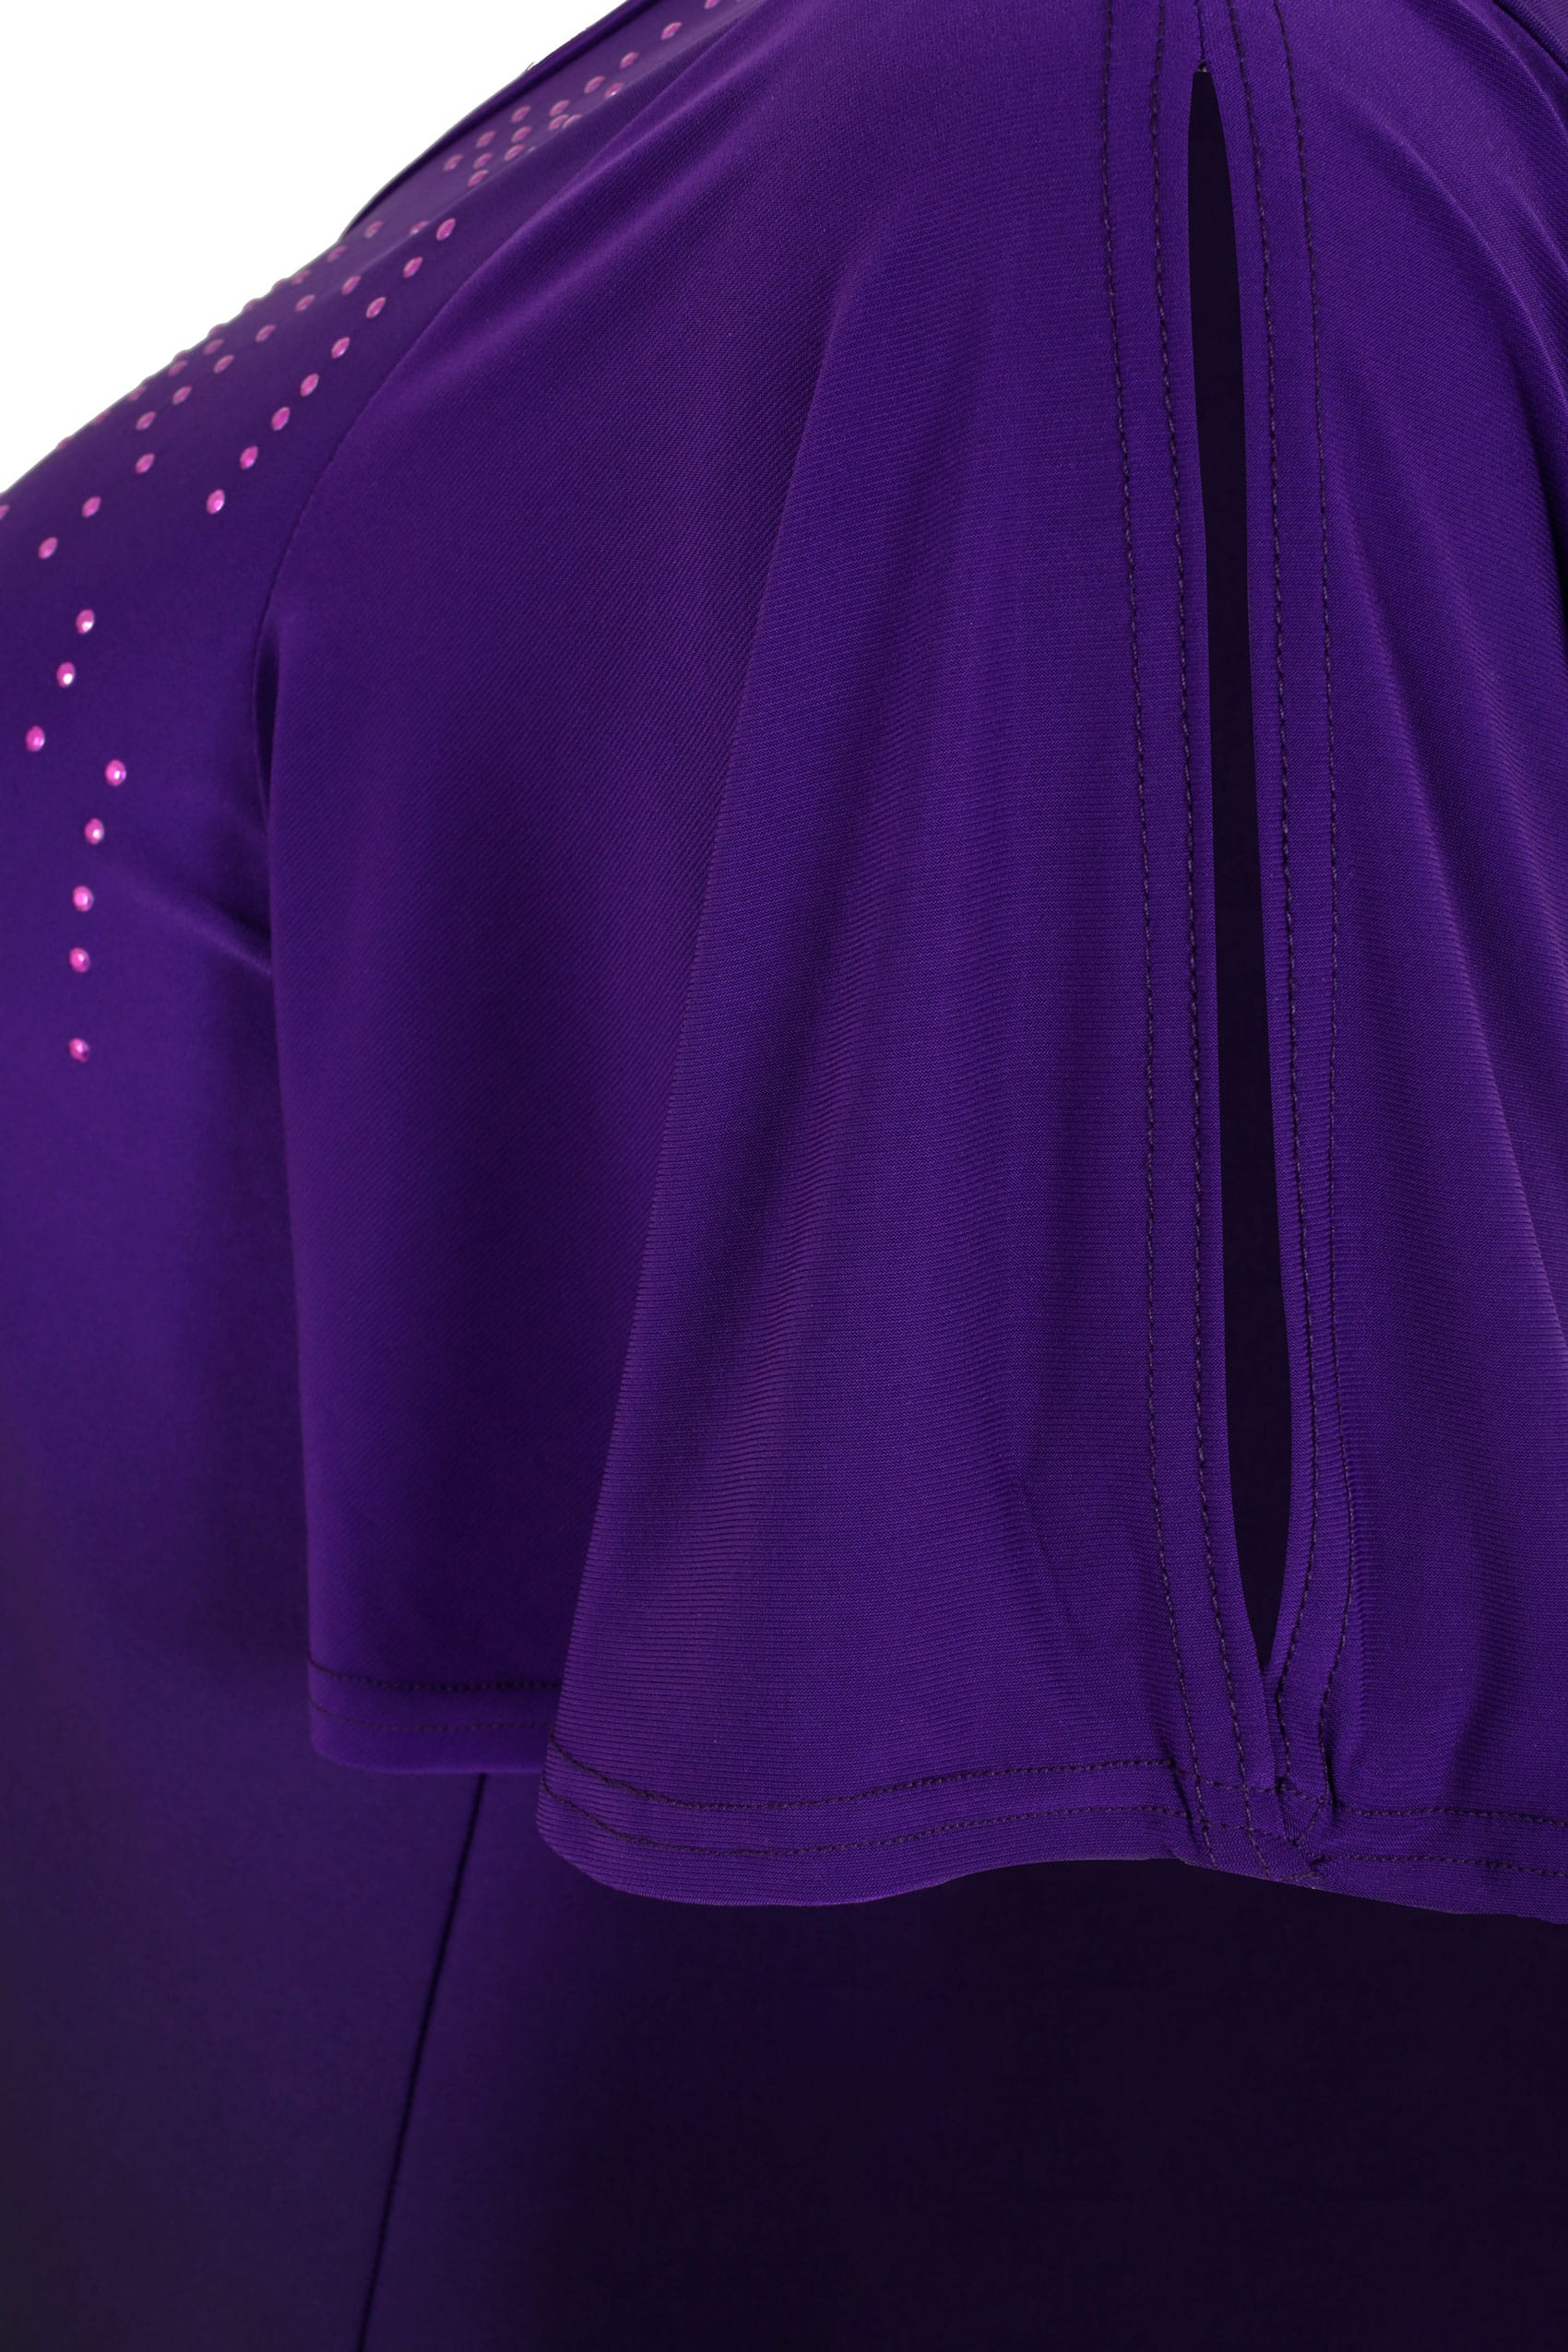 purple ombre longline top with stud details hanky hem plus size 16 to 36. Black Bedroom Furniture Sets. Home Design Ideas